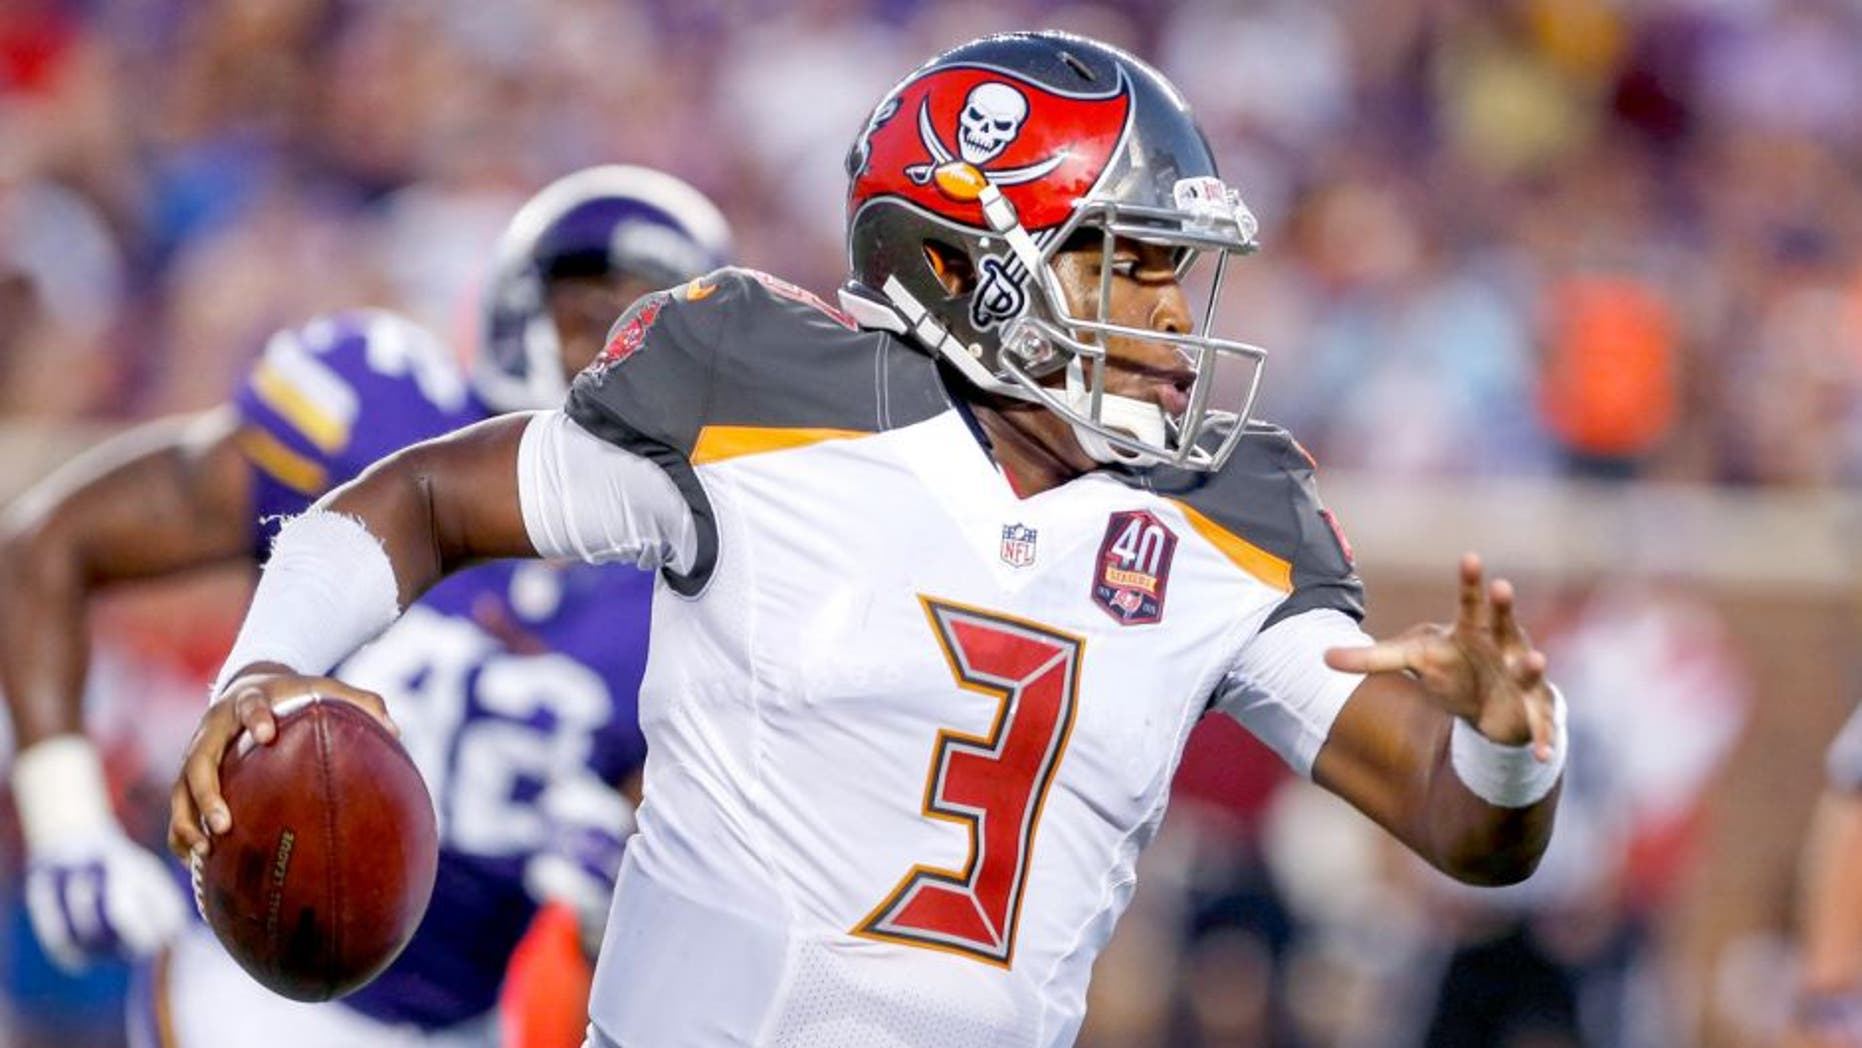 Aug 15, 2015; Minneapolis, MN, USA; Tampa Bay Buccaneers quarterback Jameis Winston (3) rushes for an 8 yard touchdown against the Minnesota Vikings in the second quarter of a preseason NFL football game at TCF Bank Stadium. The Vikings won 26-16. Mandatory Credit: Bruce Kluckhohn-USA TODAY Sports